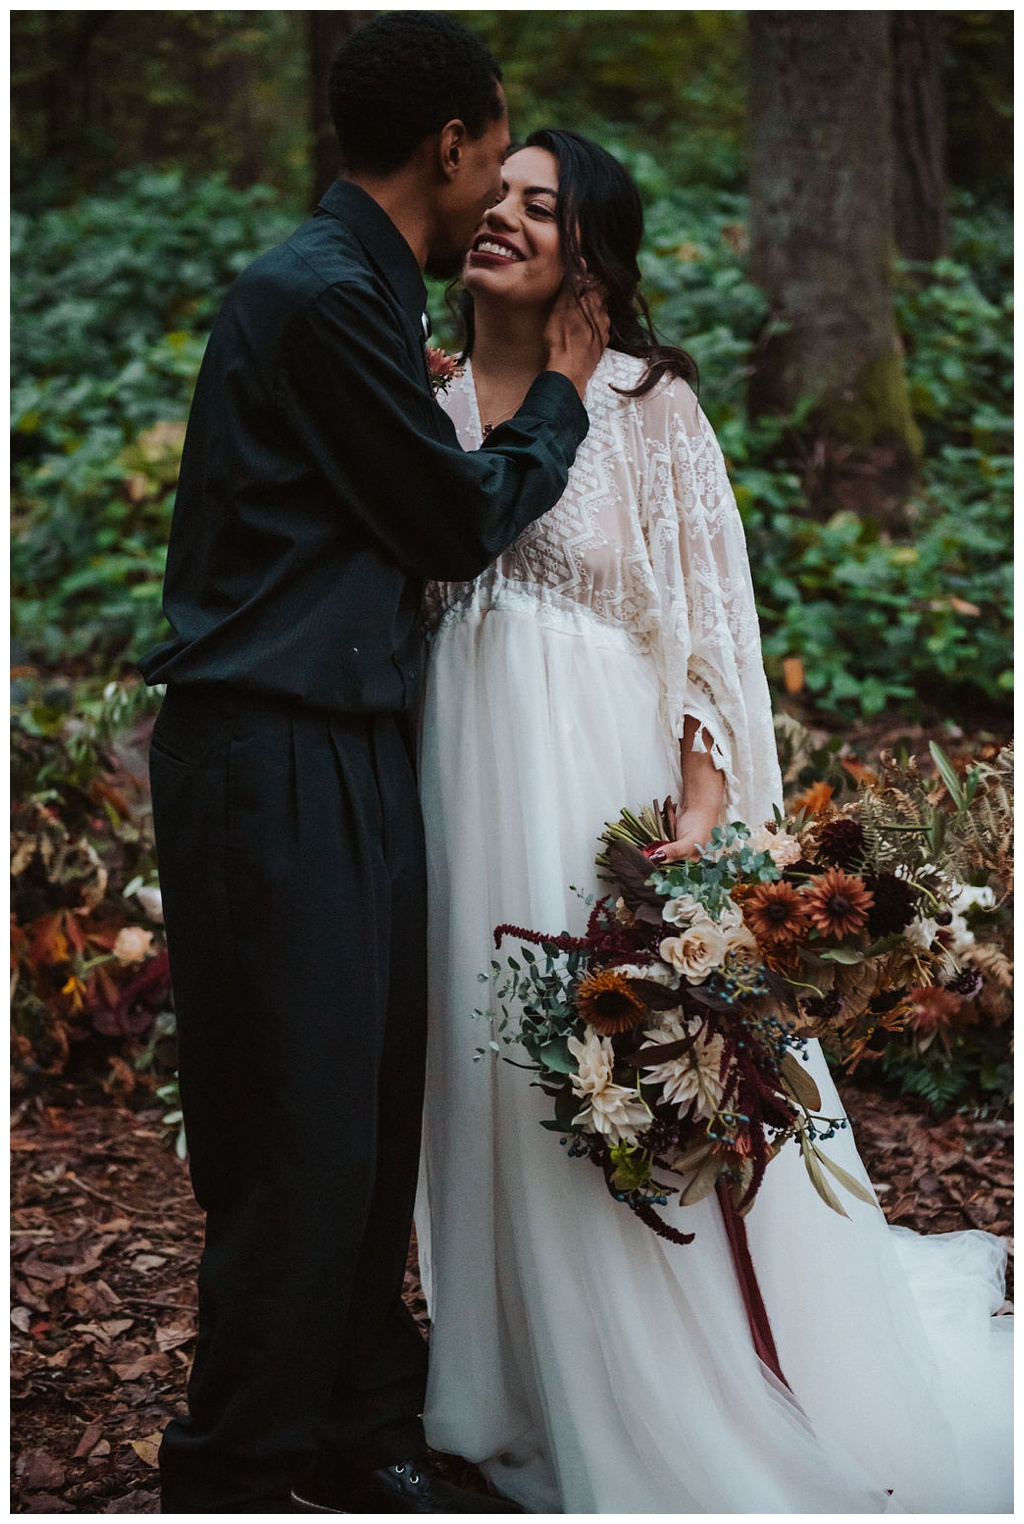 An interracial couple kissing during their wedding ceremony at a fall forest elopement in Seattle